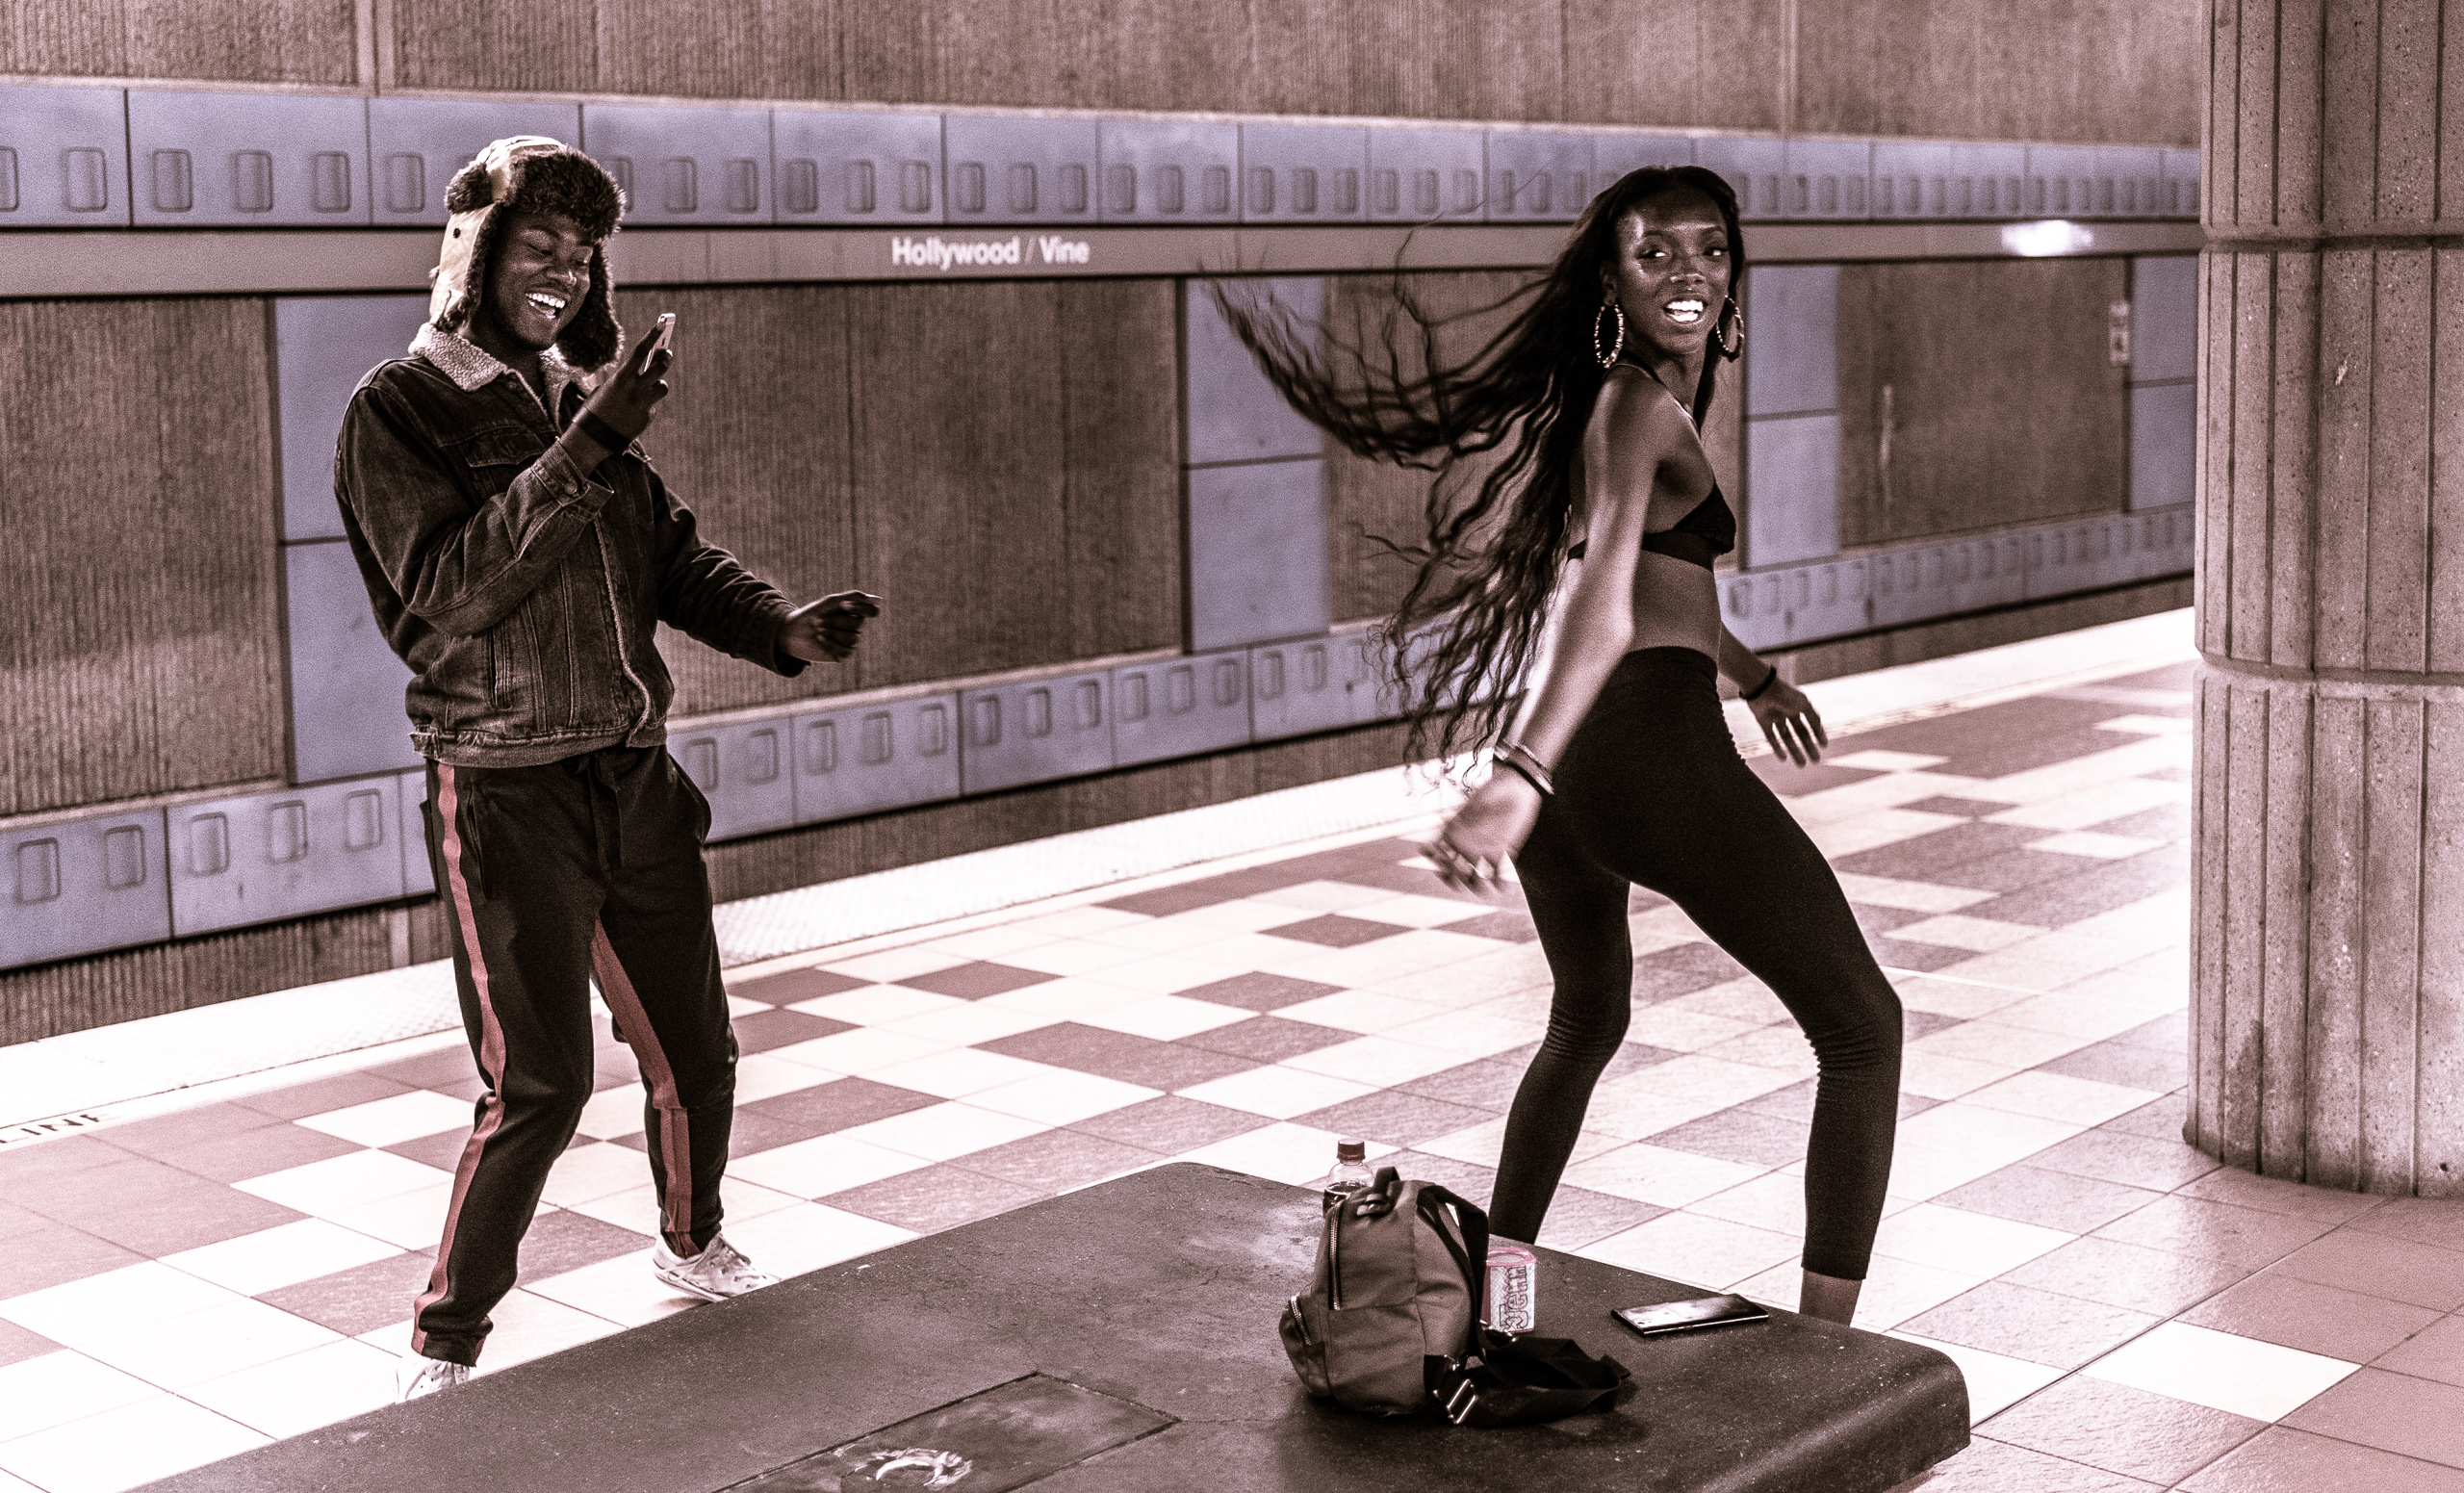 A girl dances with joy as her long black hair flows behind her. A guy also sways as he holds a cell phone to play music and take her picture. Metro Red Line platform at Hollywood & Vine, in Hollywood, Los Angeles, CA